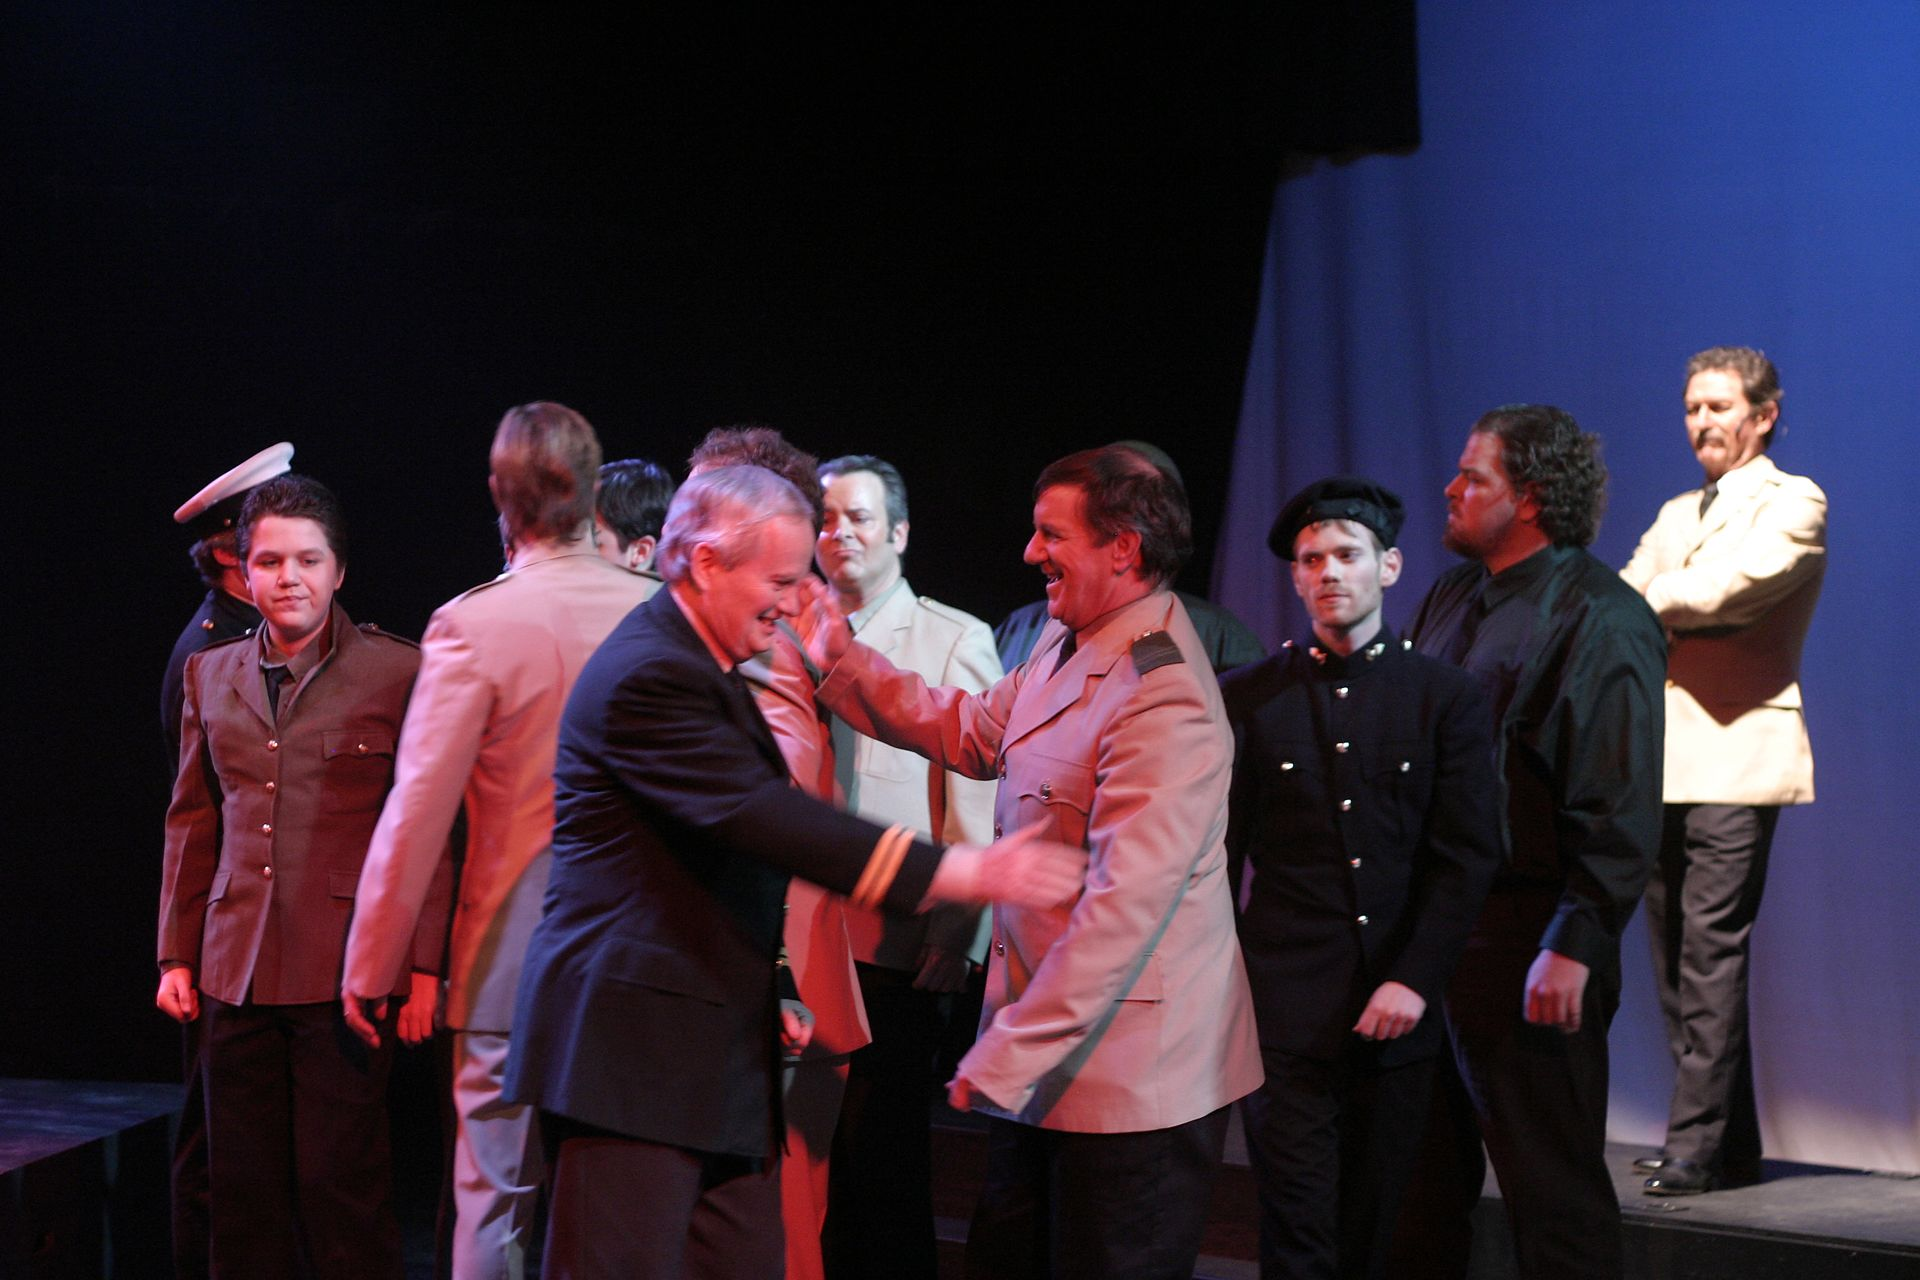 Ashton McElroy, Bill Watson, Randy Young, David Young, Darren Stewart, Christi Neahr and Richard Heyman in Evita